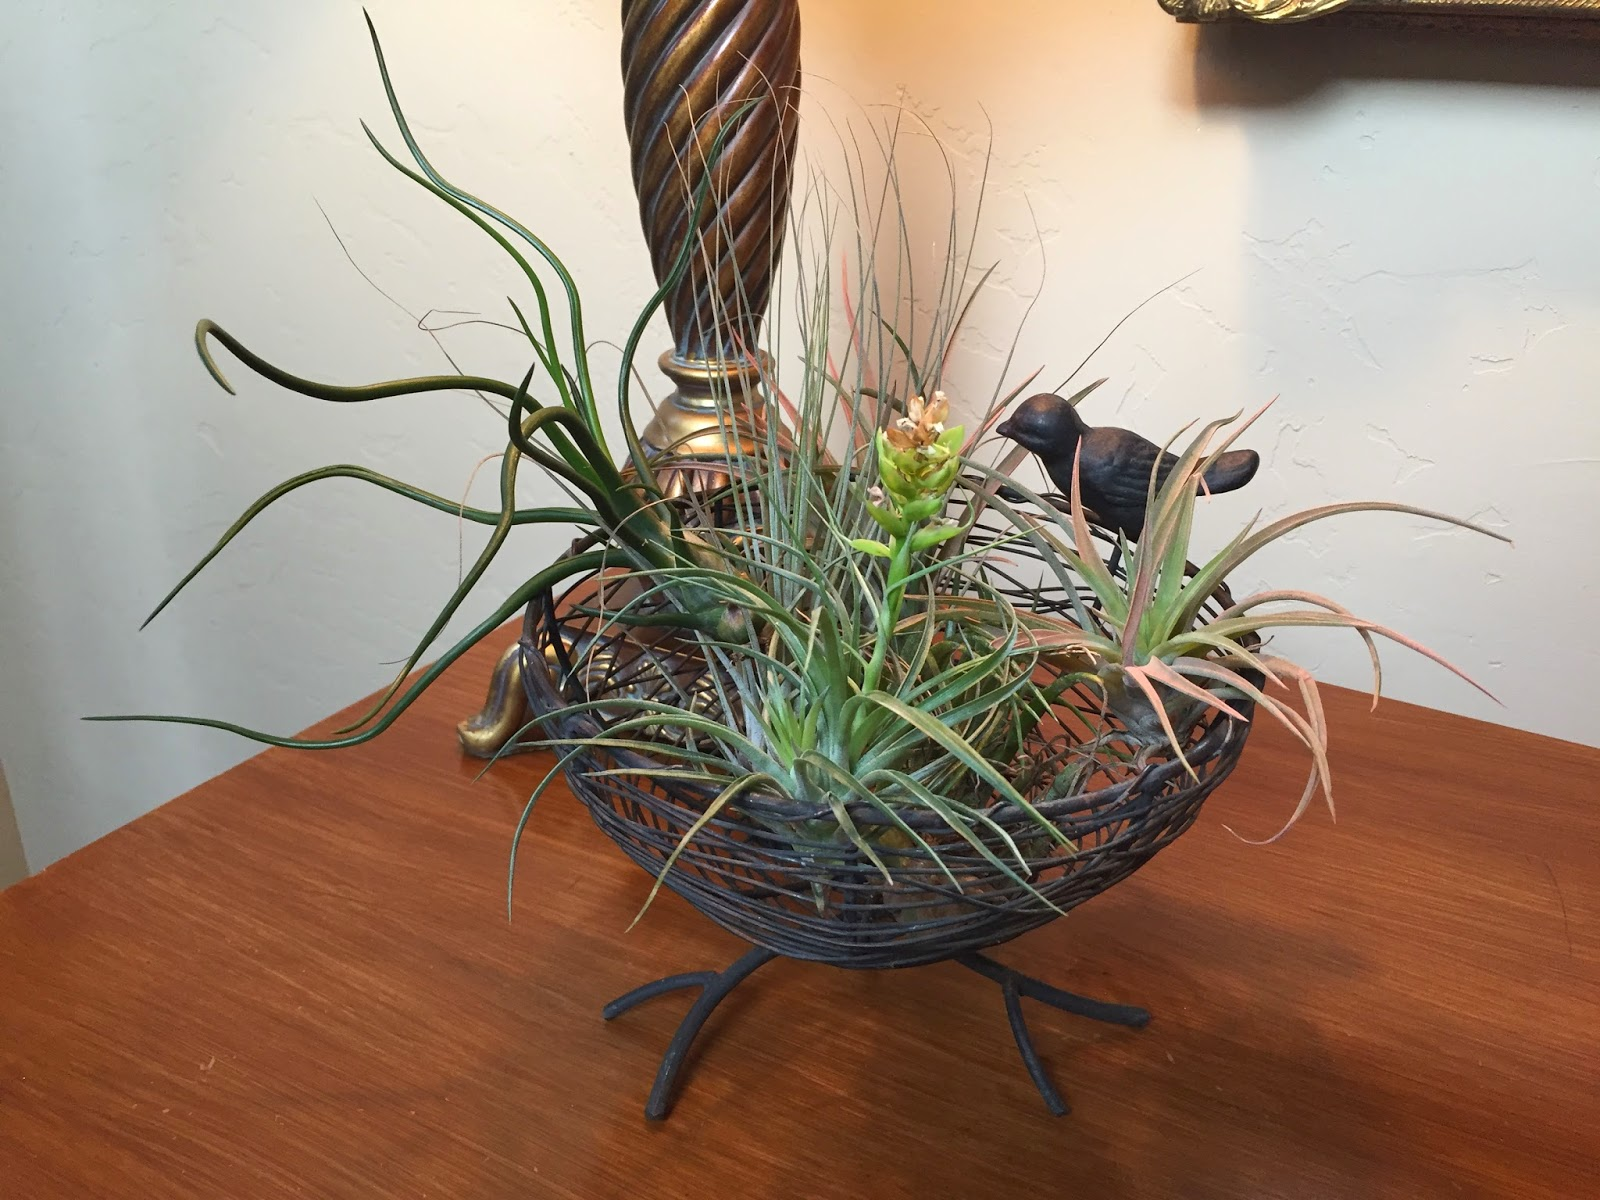 Displaying Air Plants